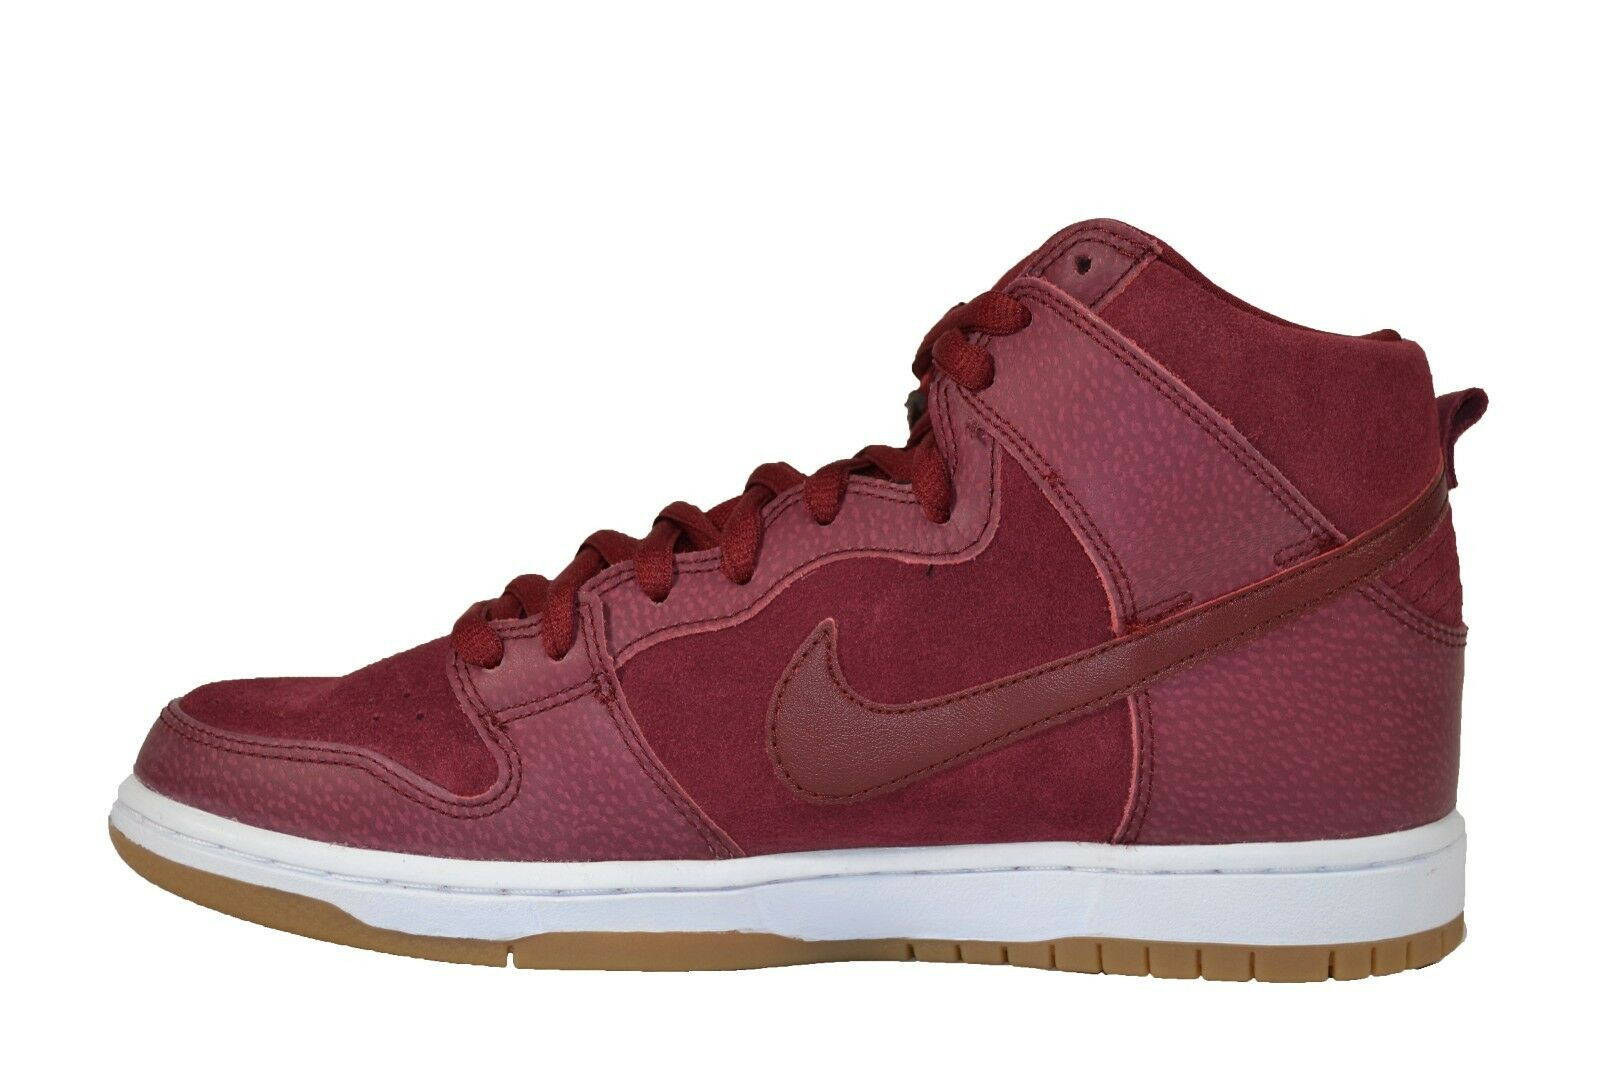 Nike DUNK Discounted HIGH PRO SB Team Rojo Filbert Discounted DUNK (183) Hombre Zapatos a596d1